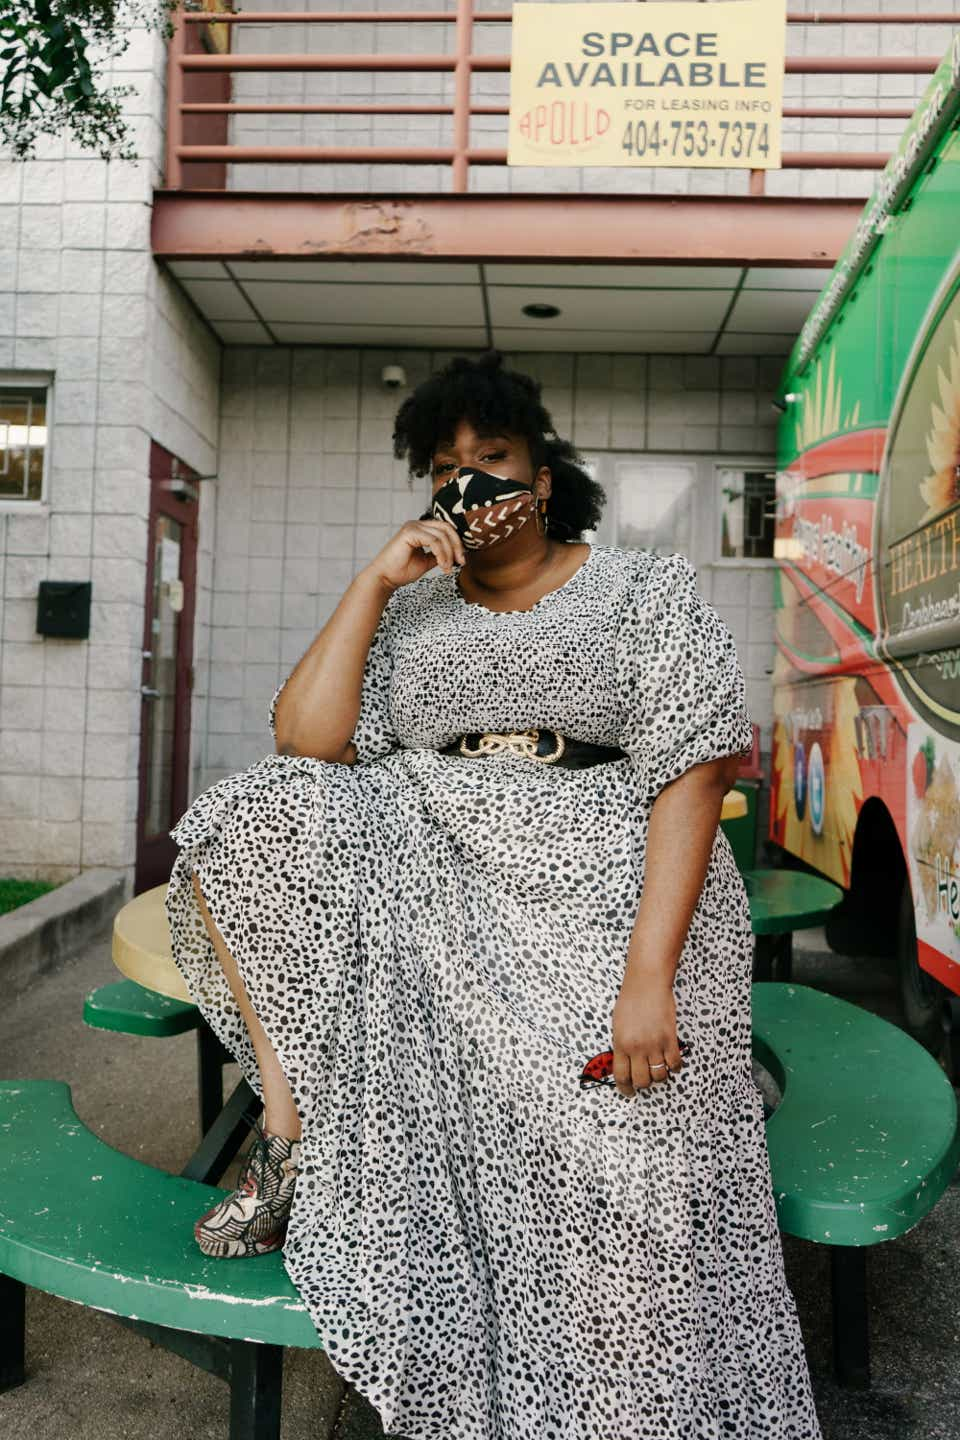 Olamma is posing atop a green lunch table in a black-and-white leopard print dress with puff sleeves. She has the dress belted with a black belt and is wearing a black-and-brown face mask.